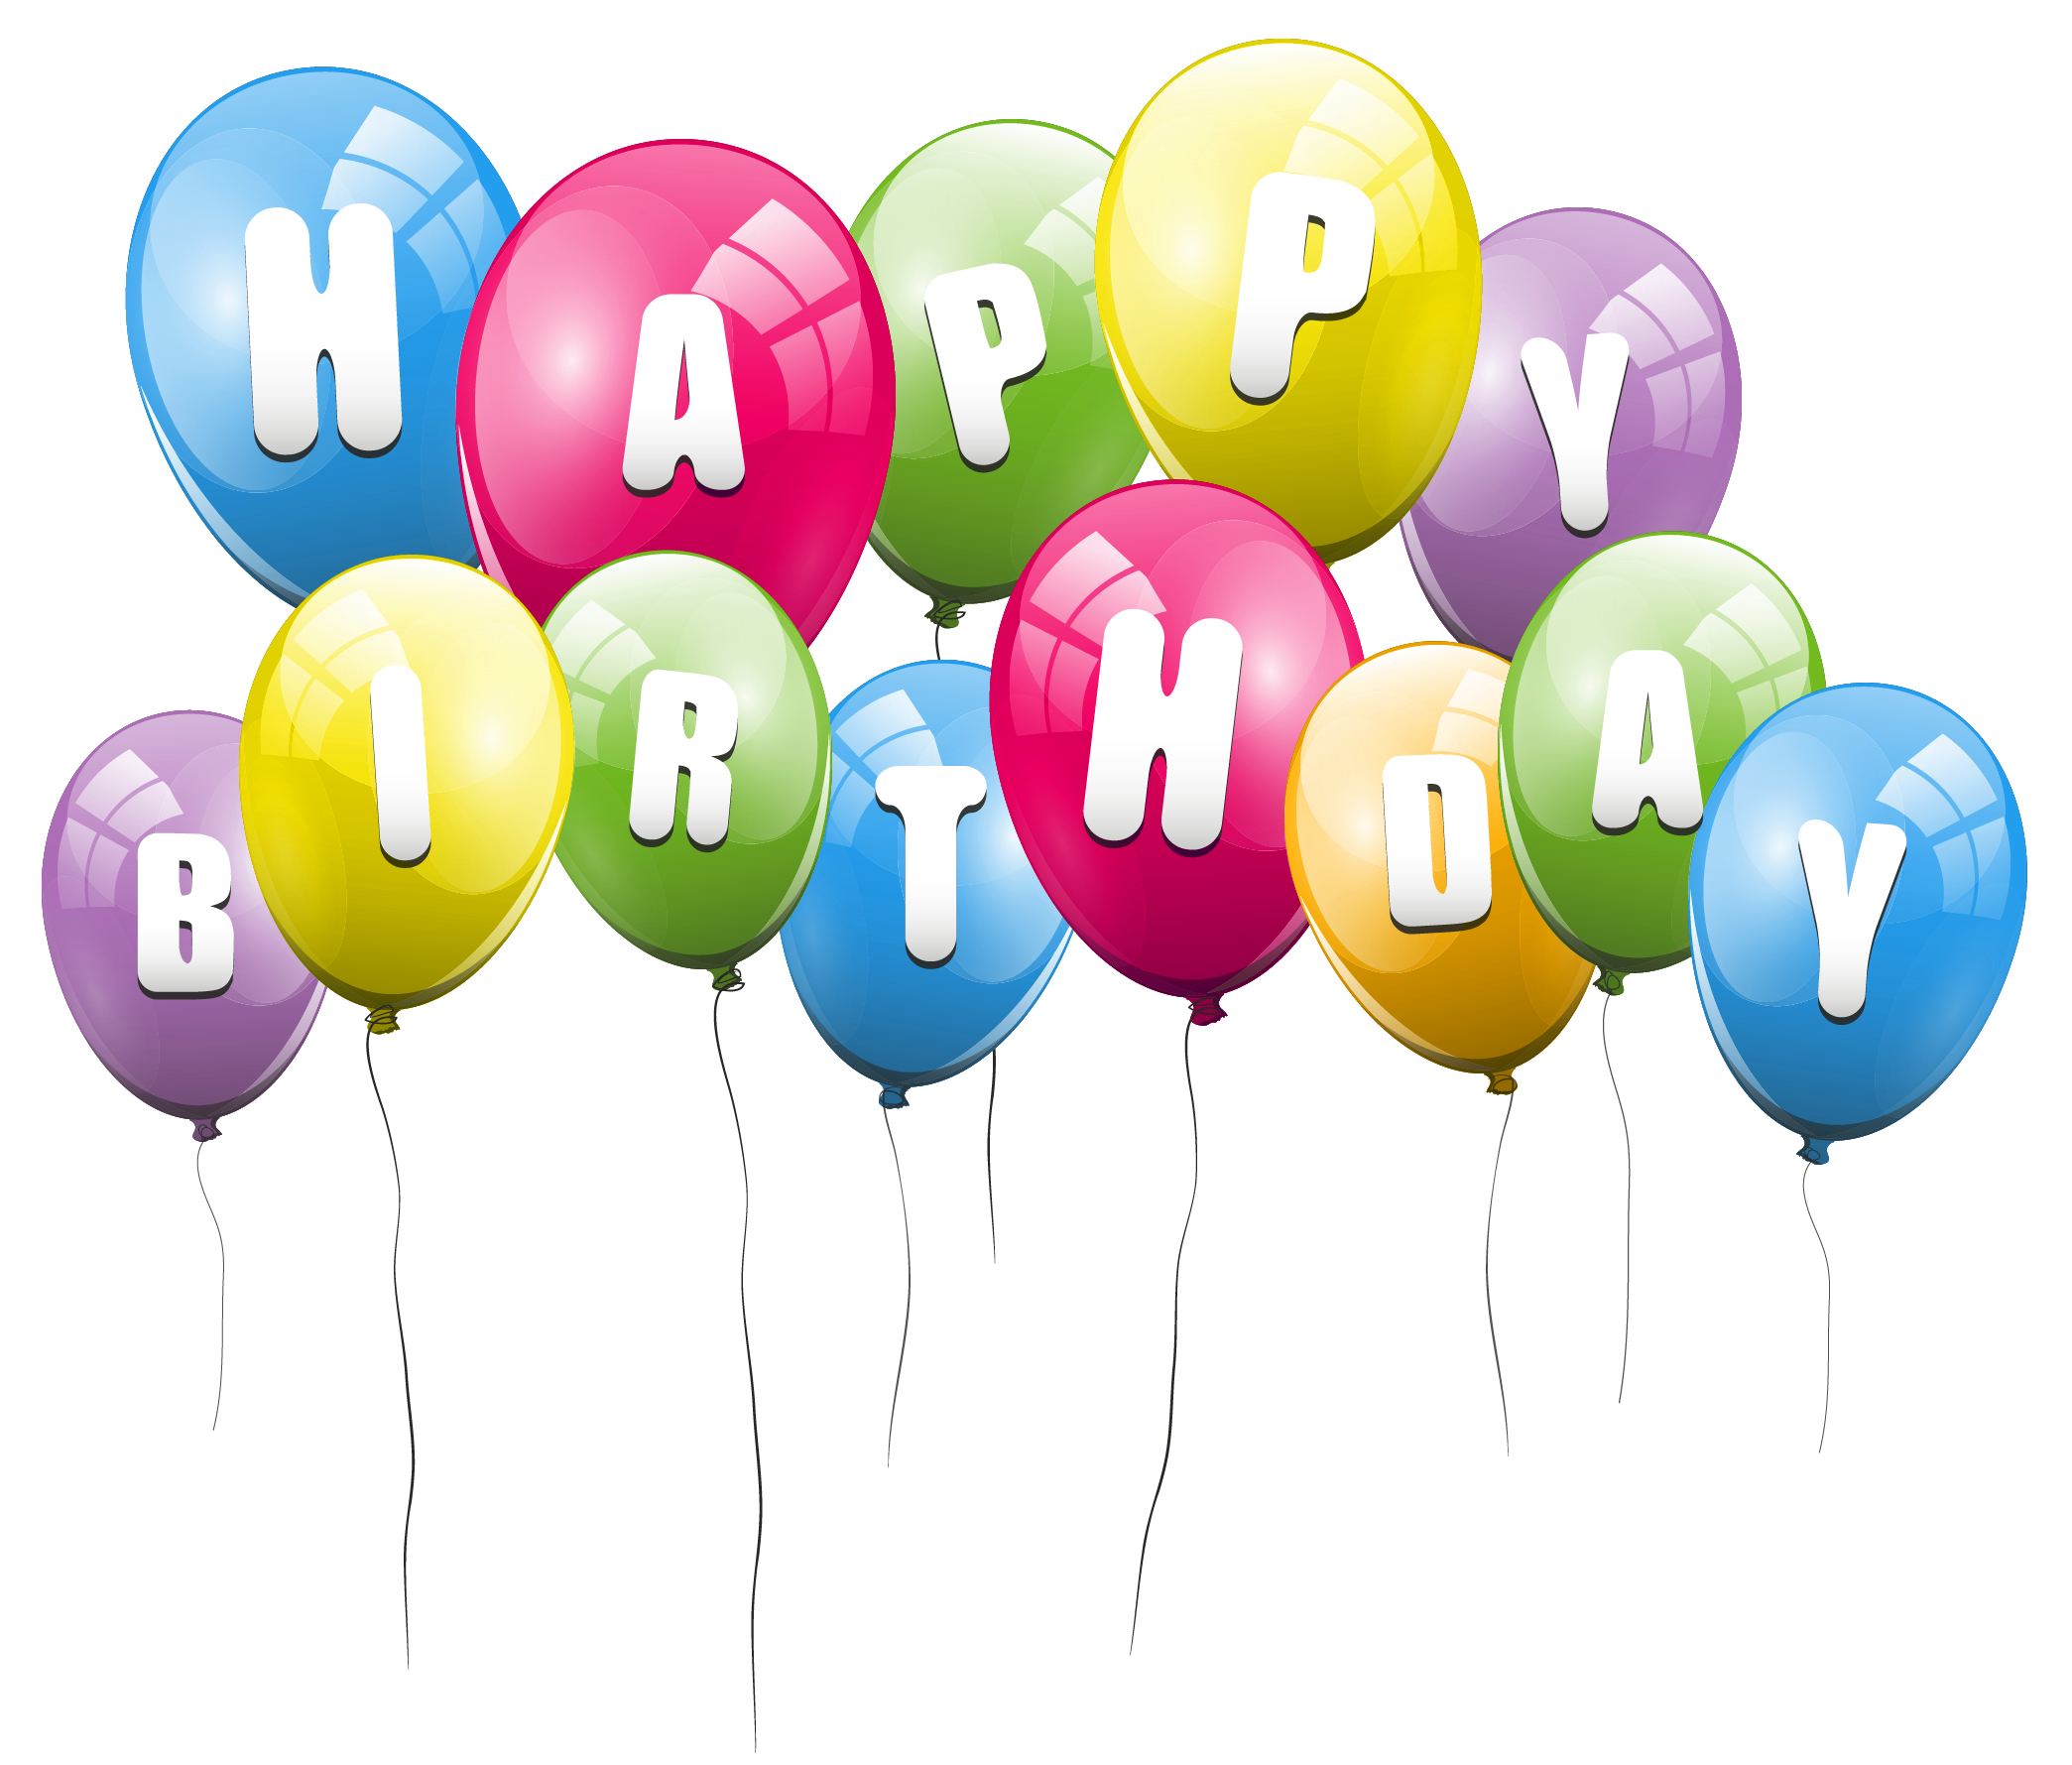 31 Birthday Balloon Png   Free Cliparts That You Can Download To You